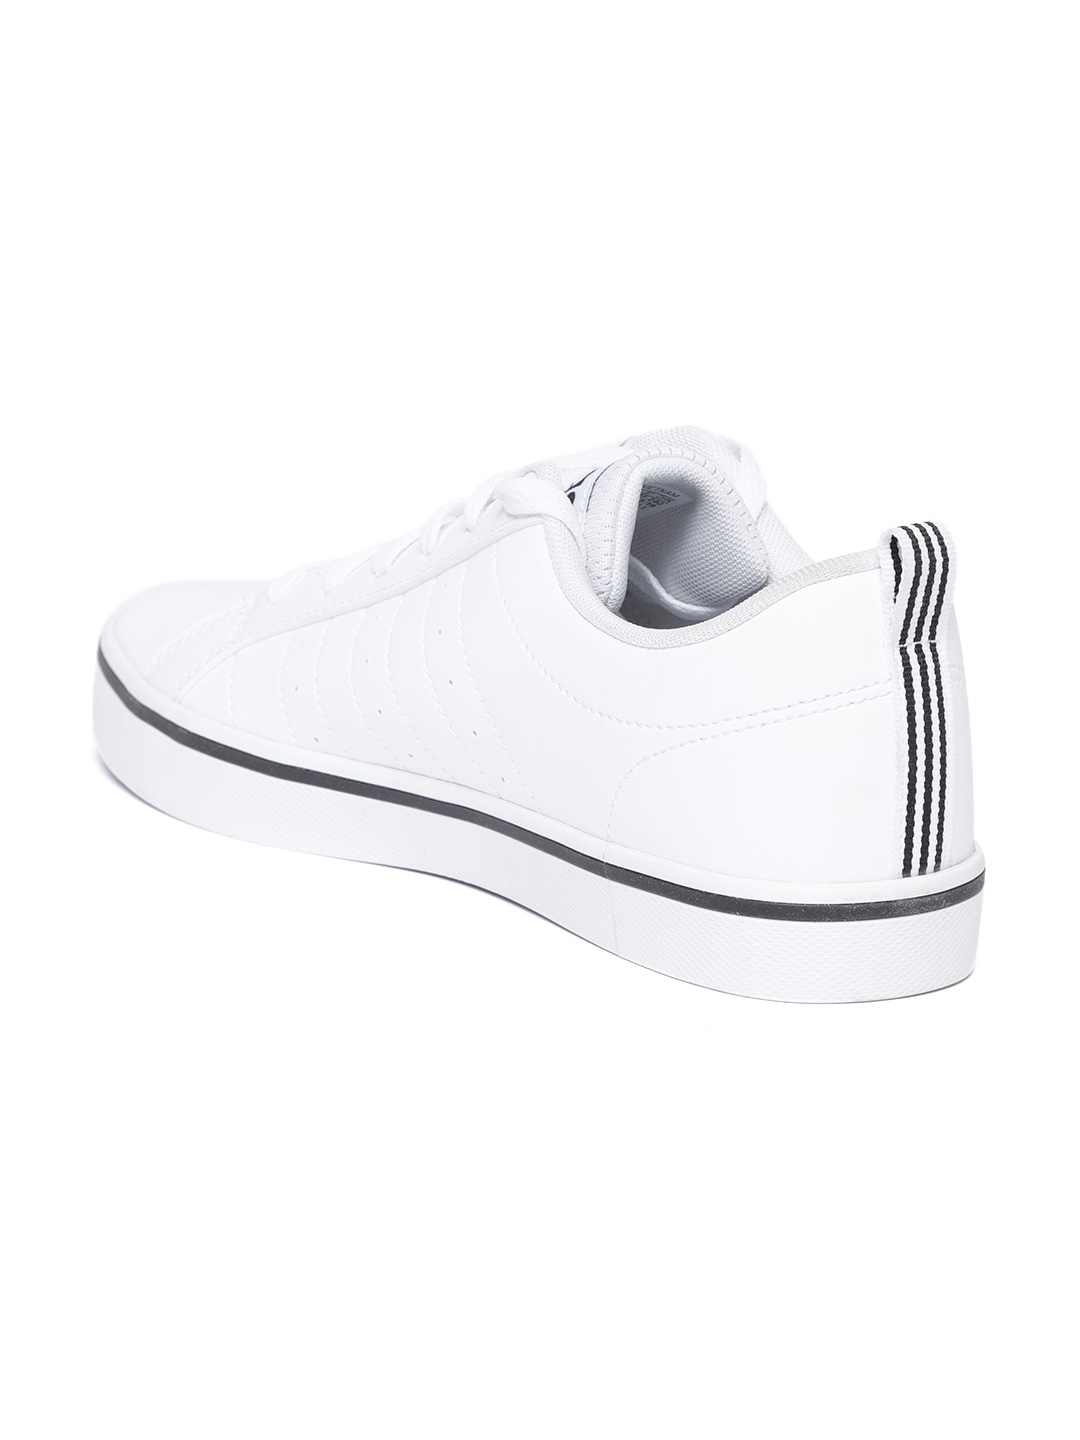 Buy Adidas Men White Vs Pace Basketball Shoes Casual Shoes For Men